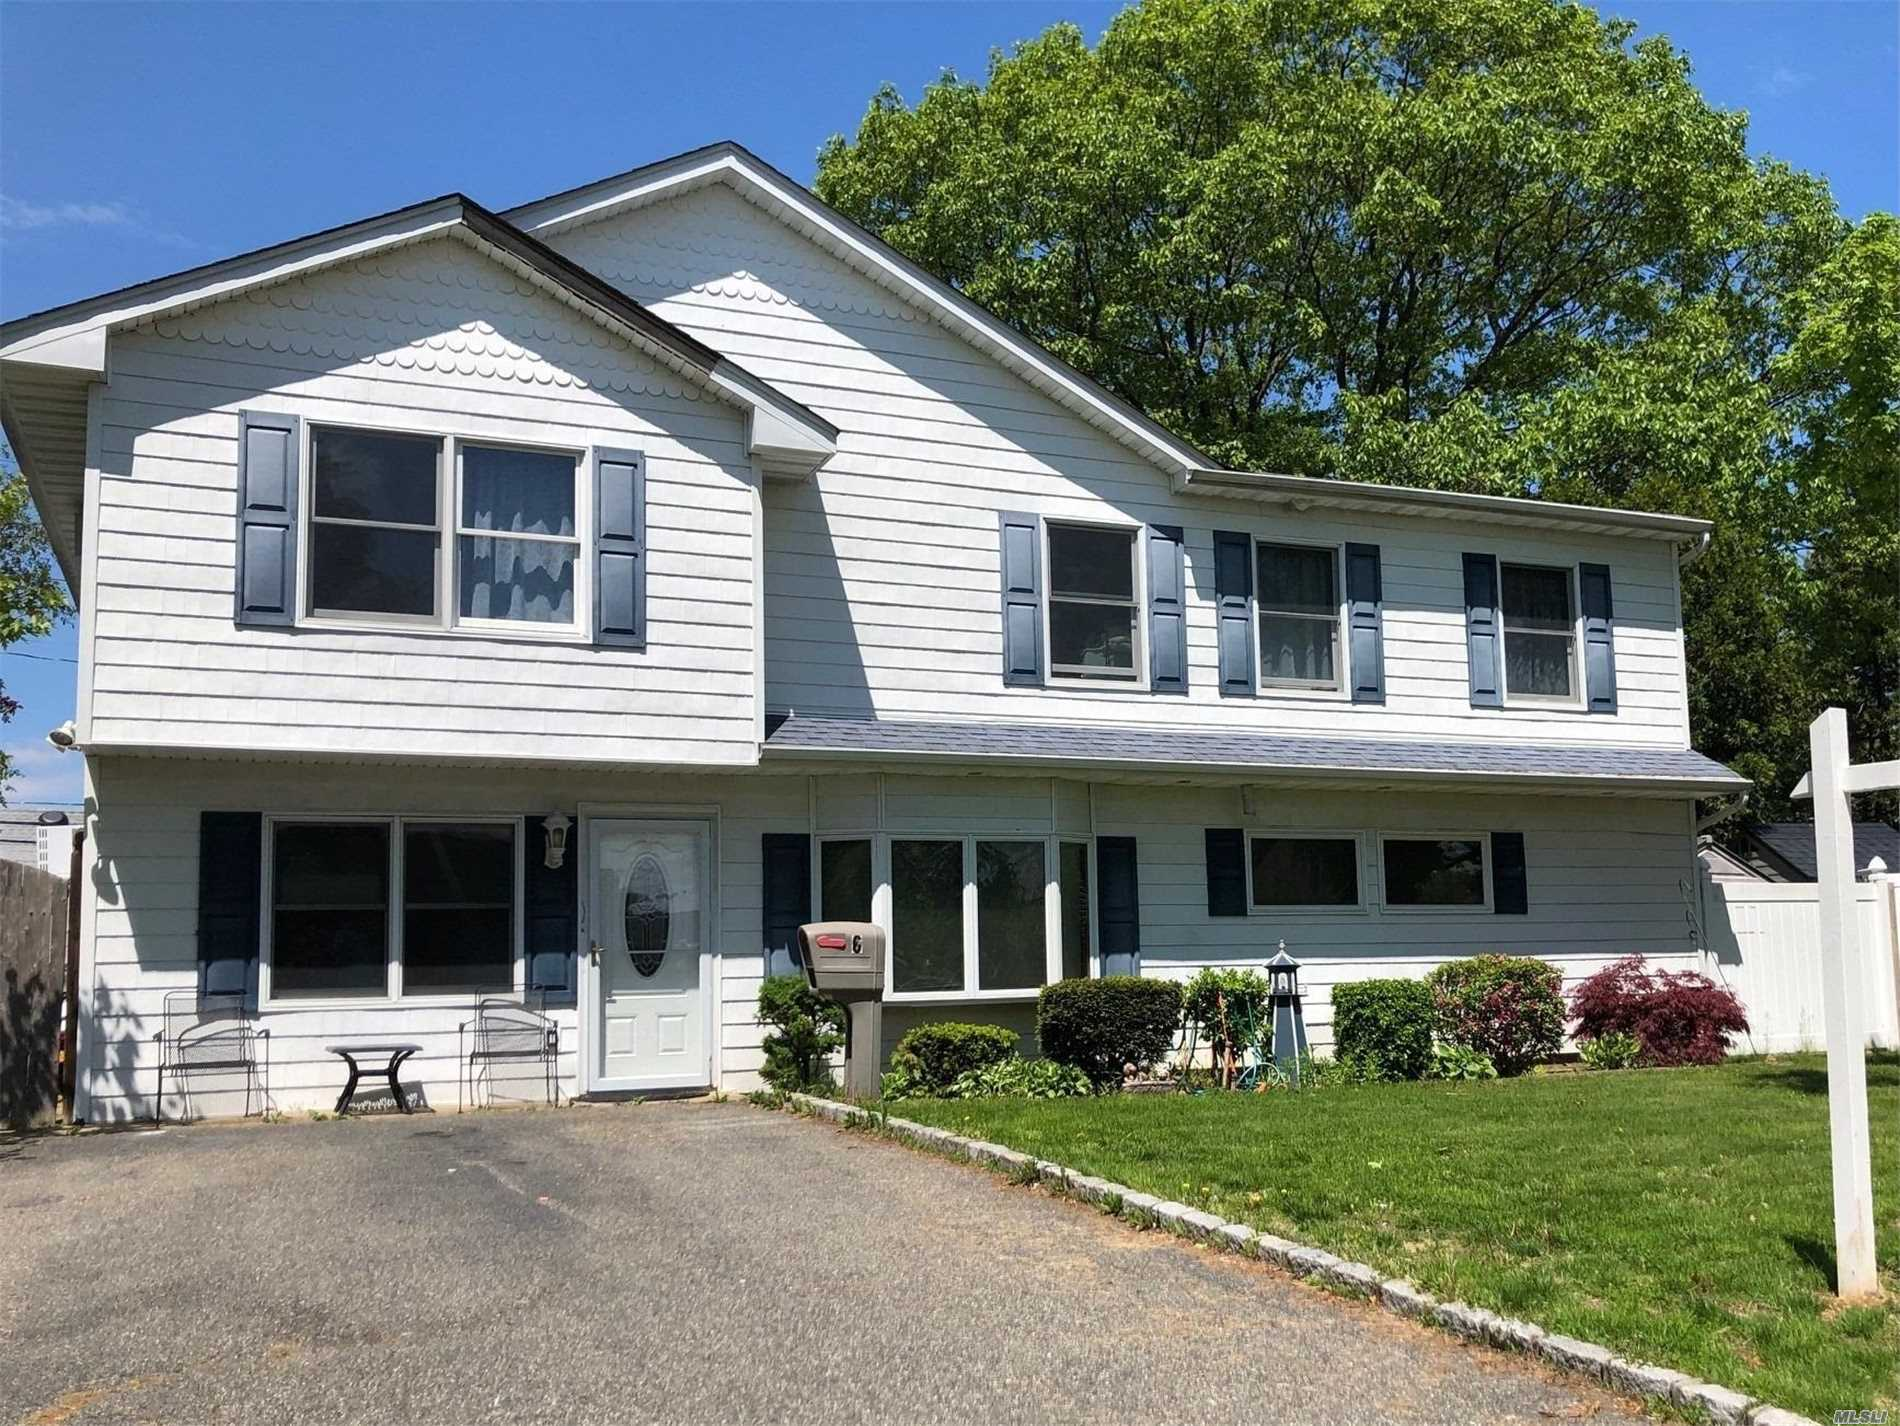 Completely renovated and dormered 10 years ago. Updated Eat in Kitchen and Baths. Large and spacious bedrooms and closets galore.Full formal dining room with sliders to yard. 15 x 25ft Semi-inground pool with decking and plenty of room for entertaining.